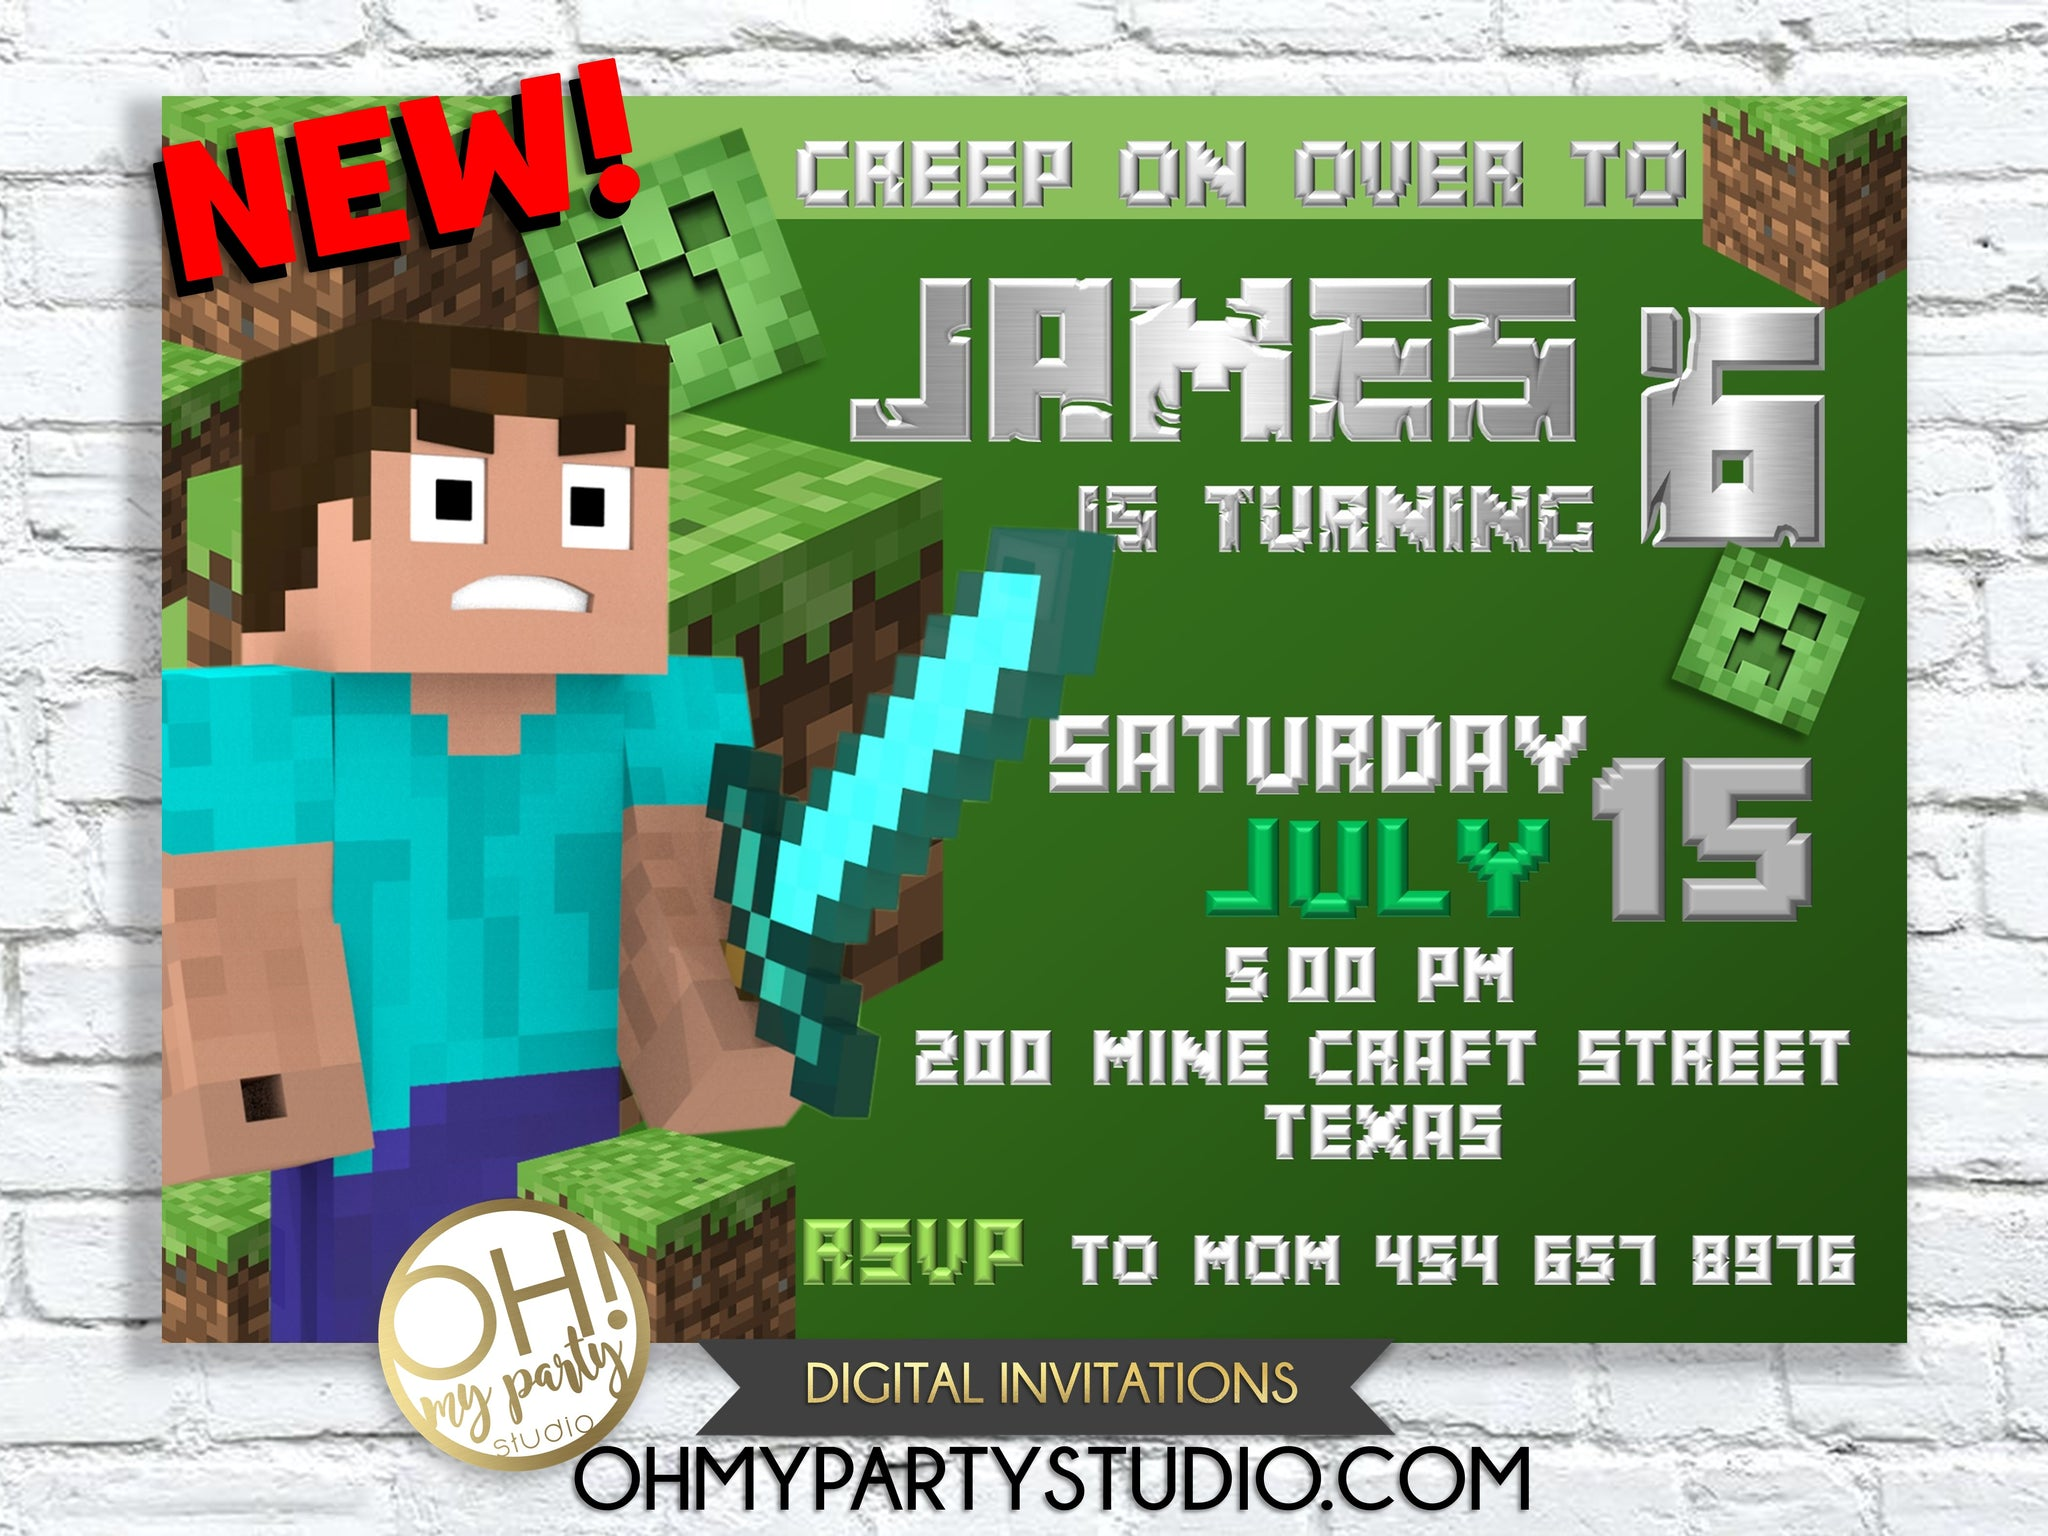 MINECRAFT BIRTHDAY INVITATION, MINECRAFT INVITATION, MINECRAFT BIRTHDAY, MINECRAFT PARTY, MINECRAFT BIRTHDAY, MINECRAFT PARTY PRINTABLES, MINECRAFT PARTY THEME, MINECRAFT PARTY IDEAS, MINECRAFT BIRTHDAY PRINTABLES, MINECRAFT INVITE, MINECRAFT CARD, MINECRAFT INVITATIONS, MINECRAFT PARTY SUPPLIES, MINECRAFT TAGS, MINECRAFT BANNER